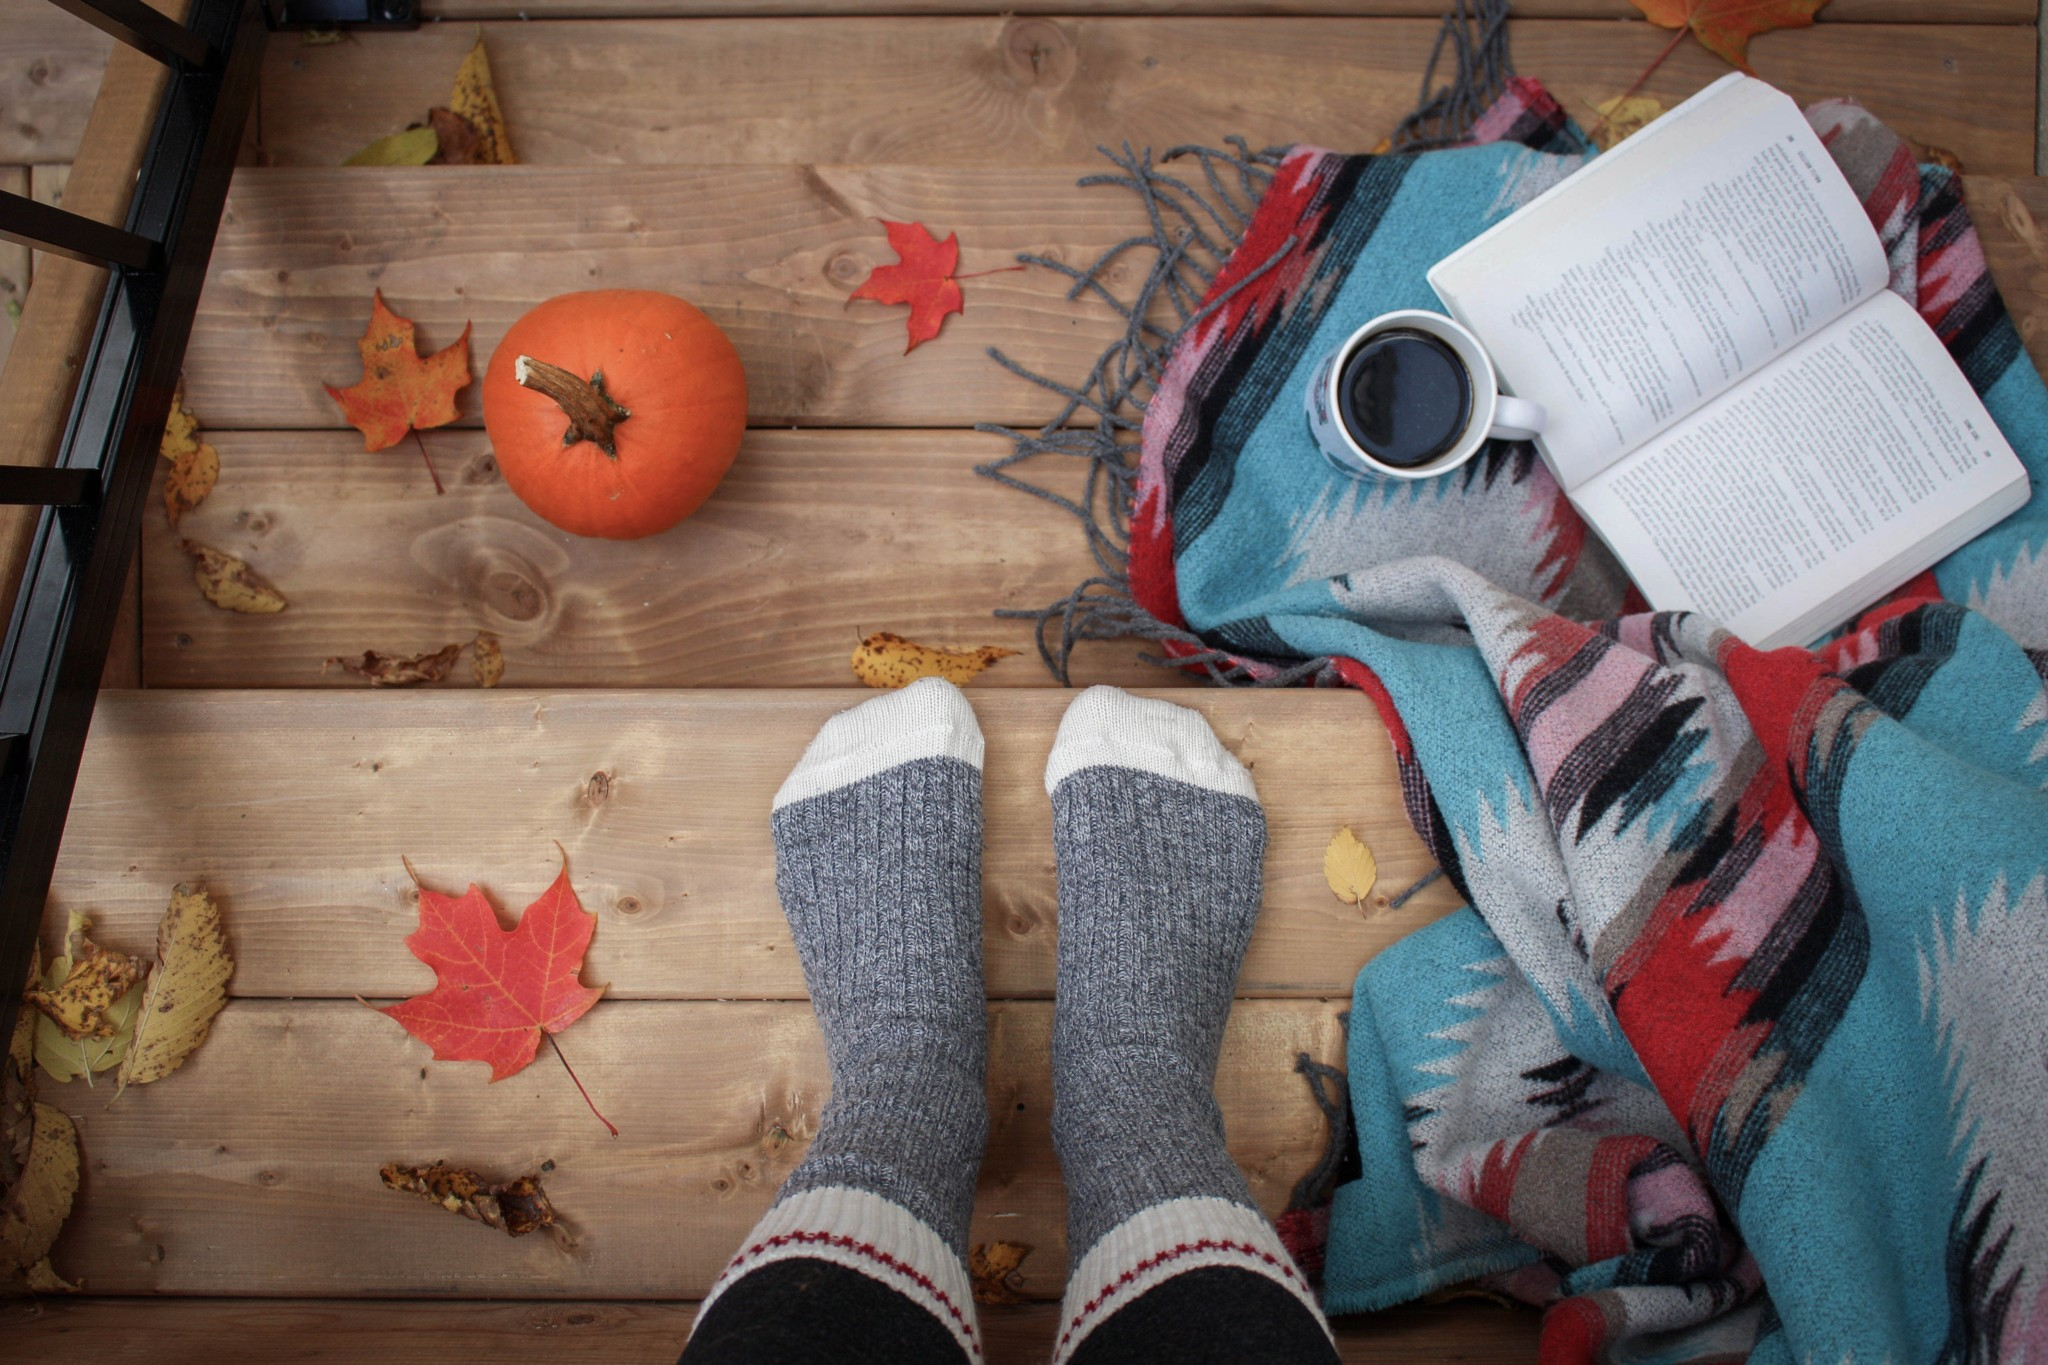 Practicing self-care in the fall with warm socks, a book, coffee, blanket, pumpkins and leaves.